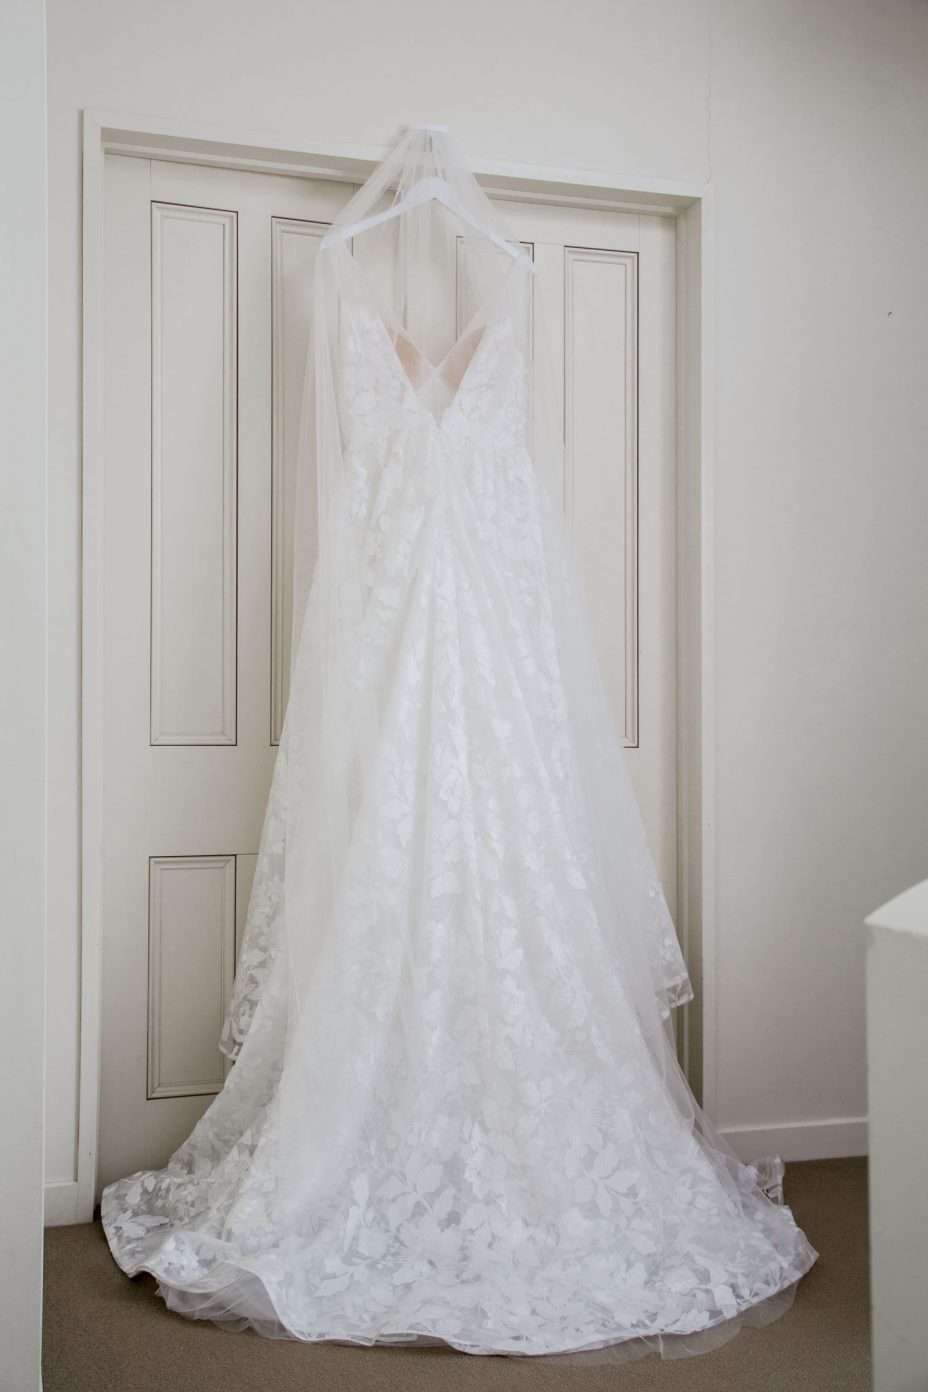 Lace wedding gown hanging from dorway